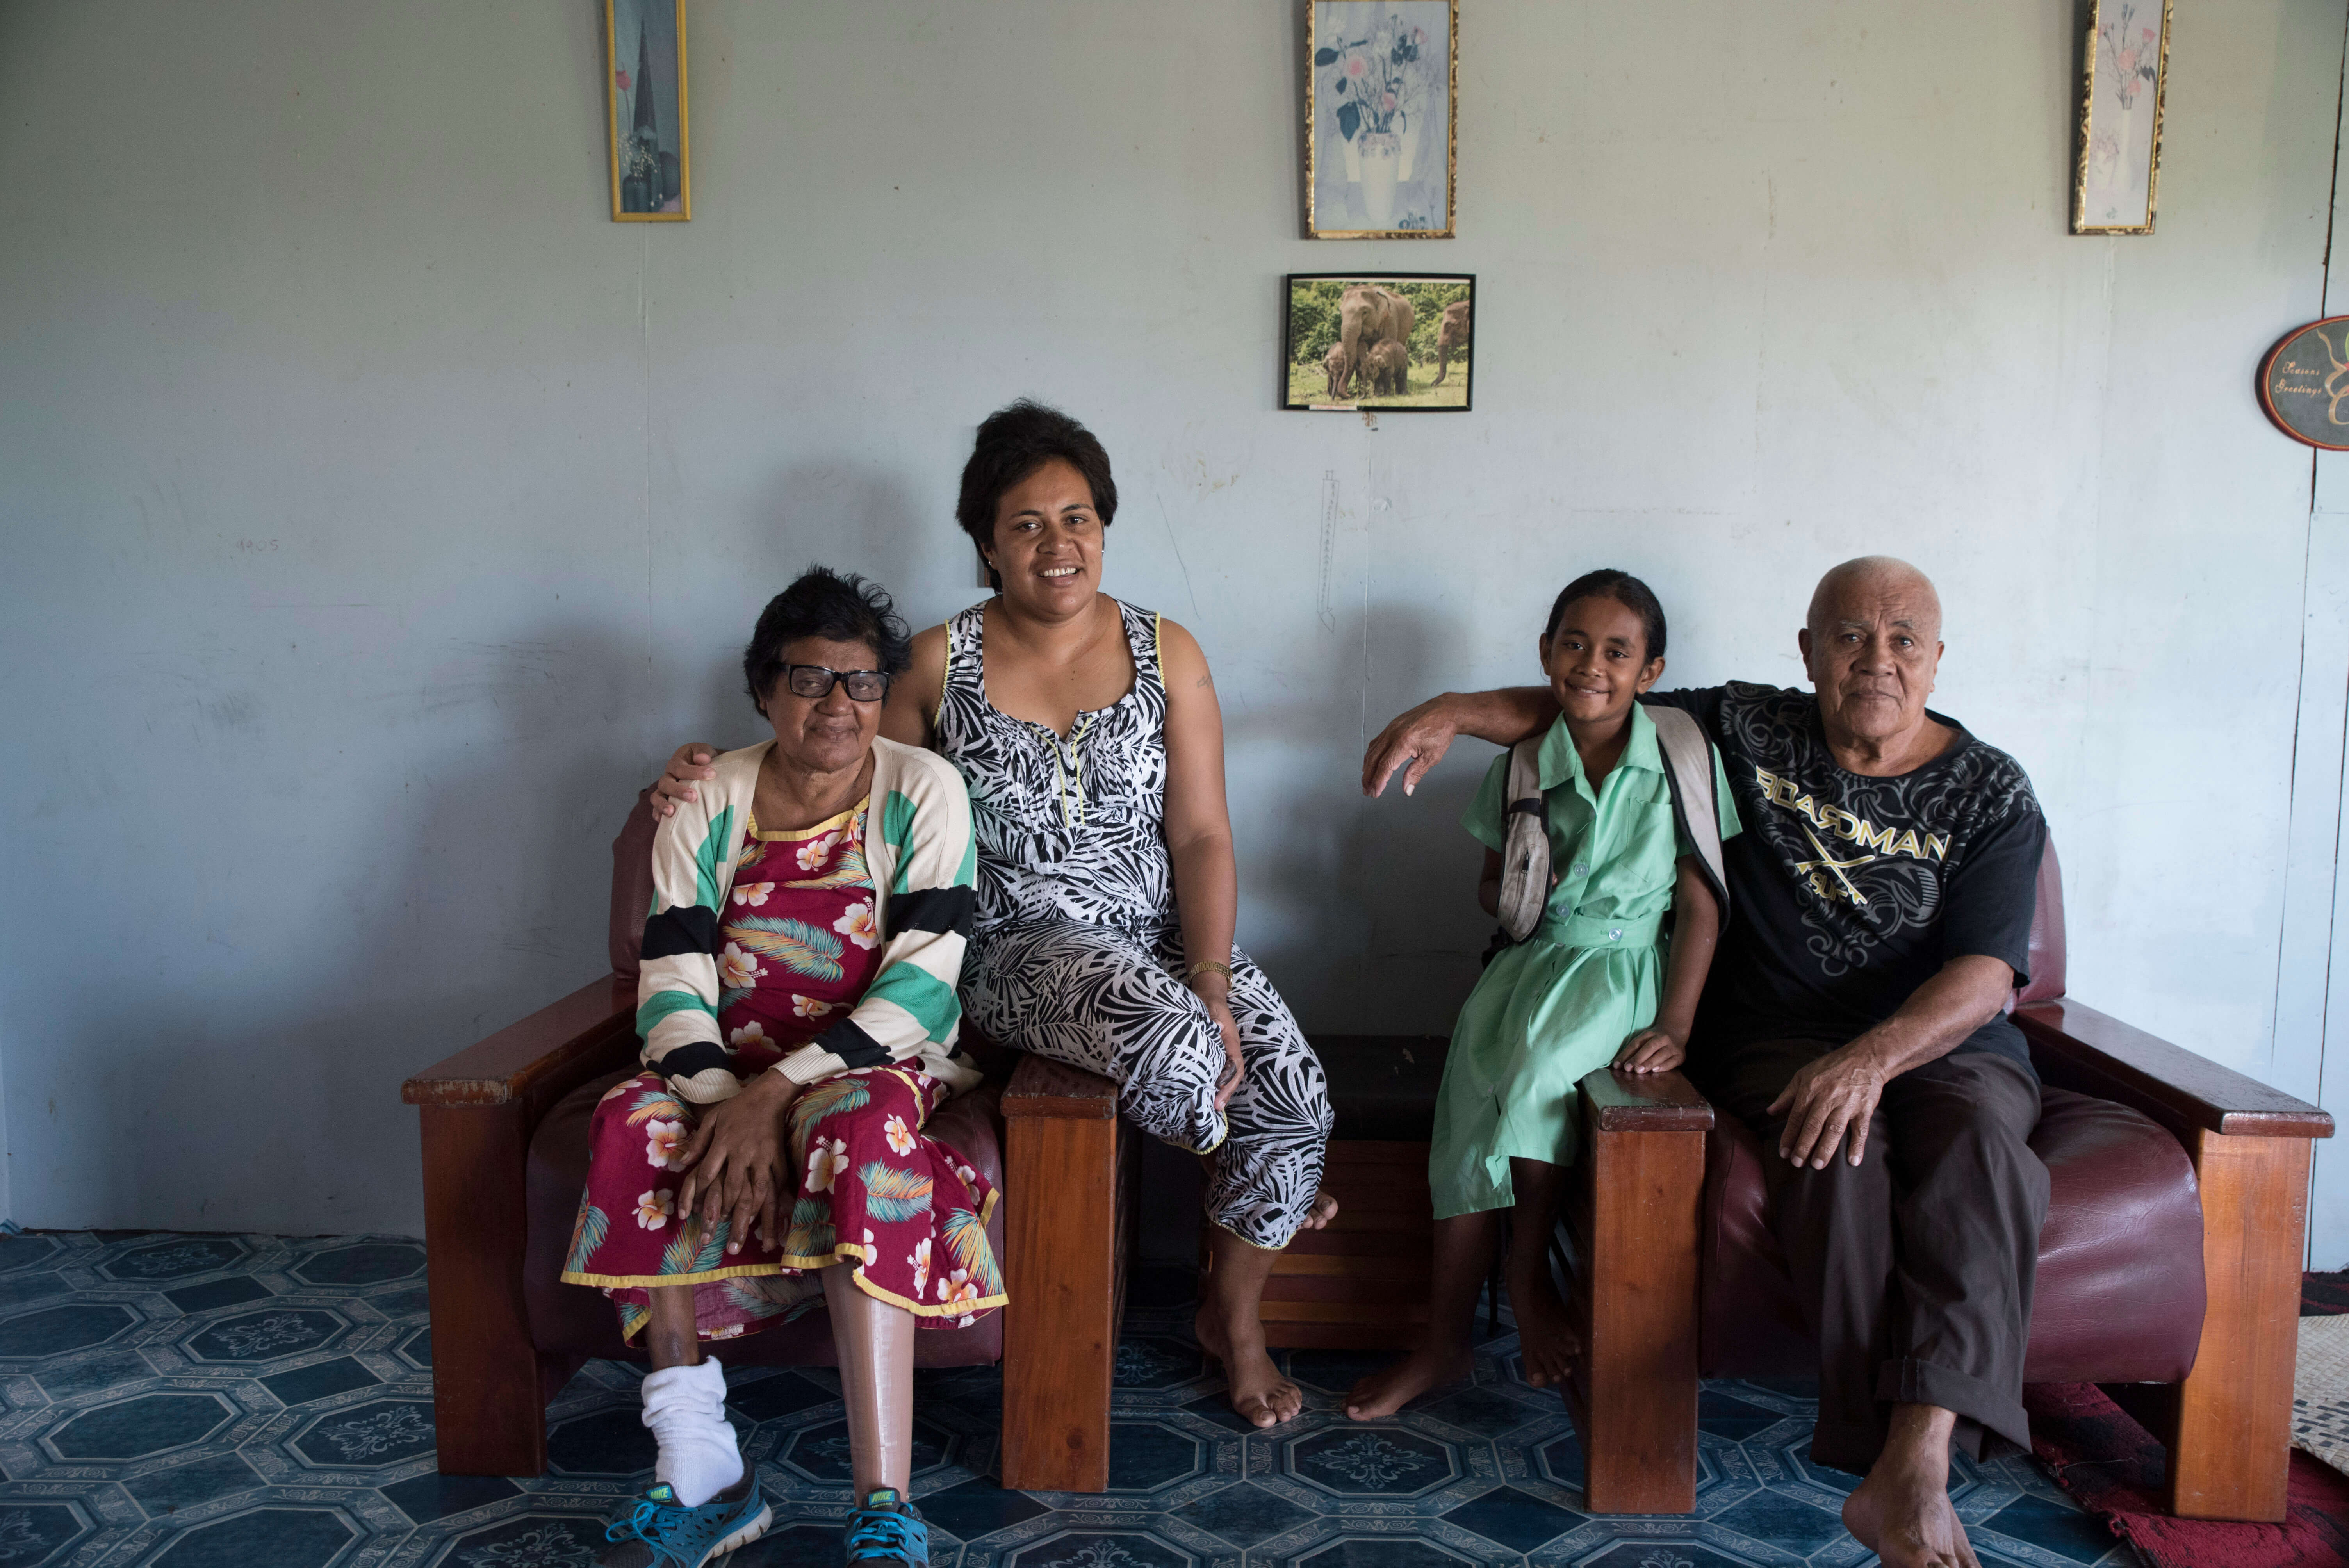 A Fijian family participating in Beyond the Stars sits for a portrait at their home in Nausori, Fiji.